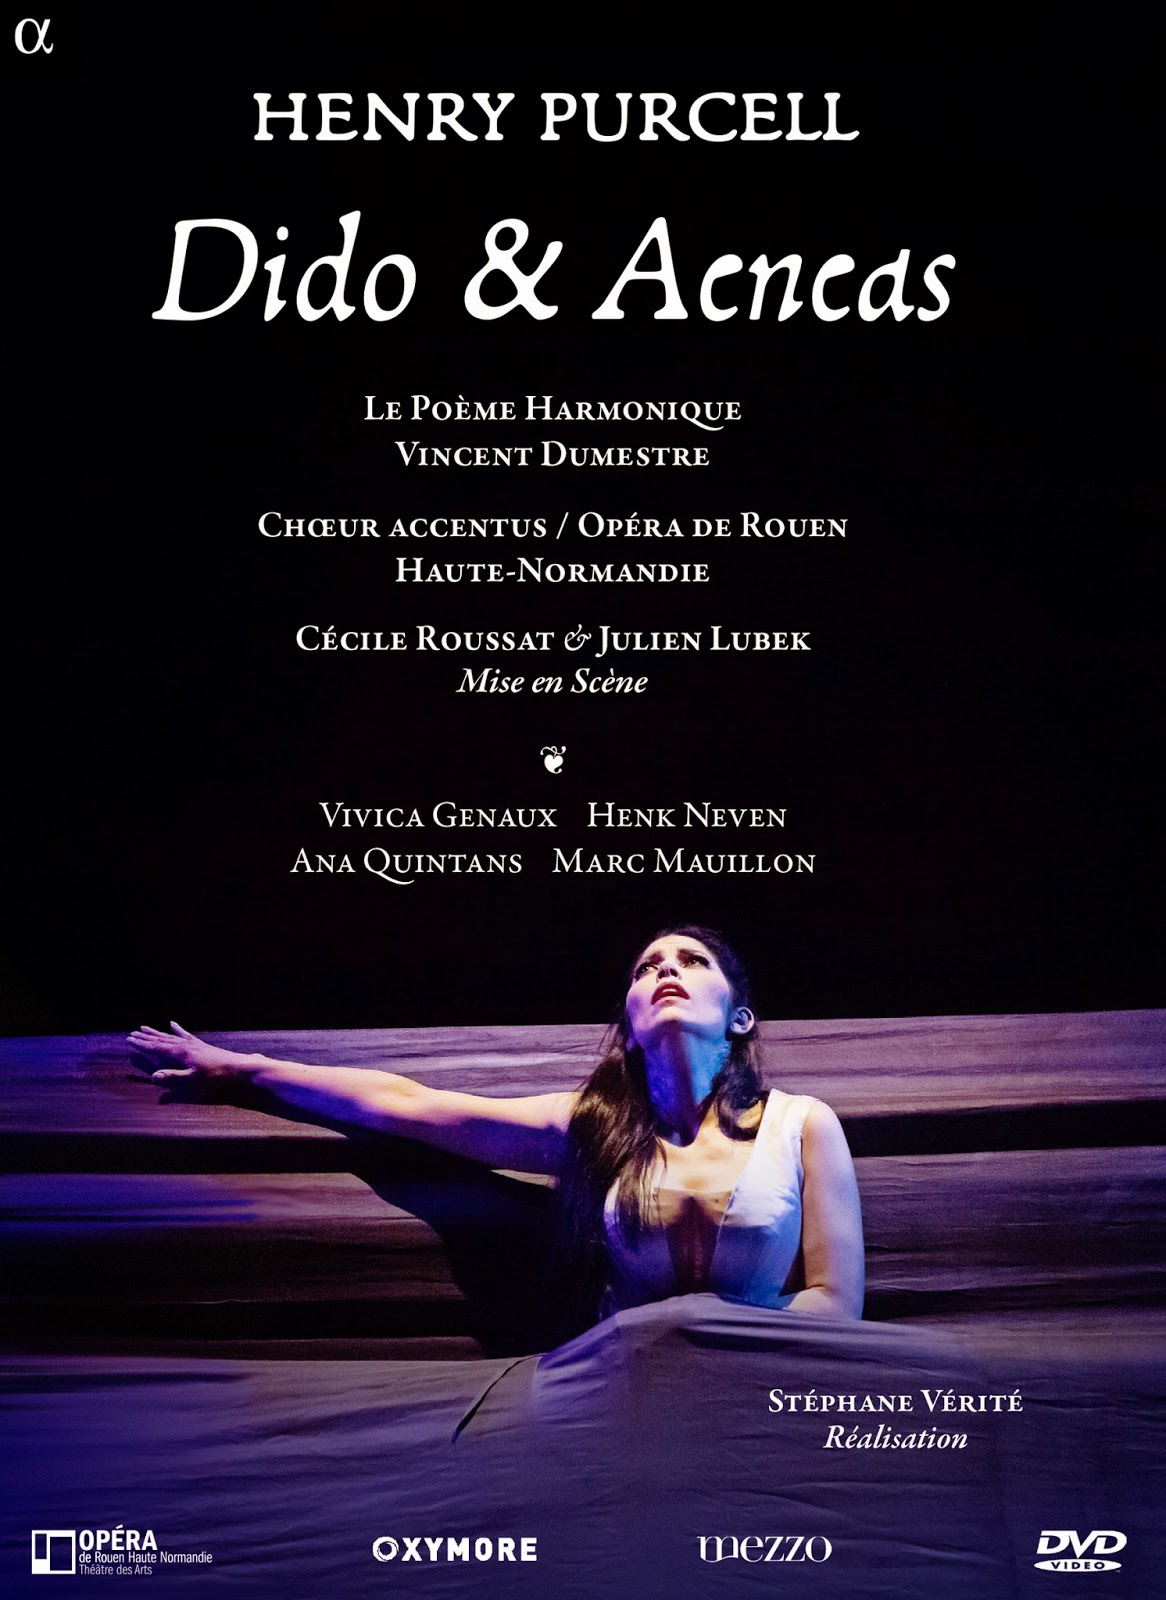 Vivica on DVD and Blu-ray: Purcell's DIDO AND AENEAS (ALPHA 706)